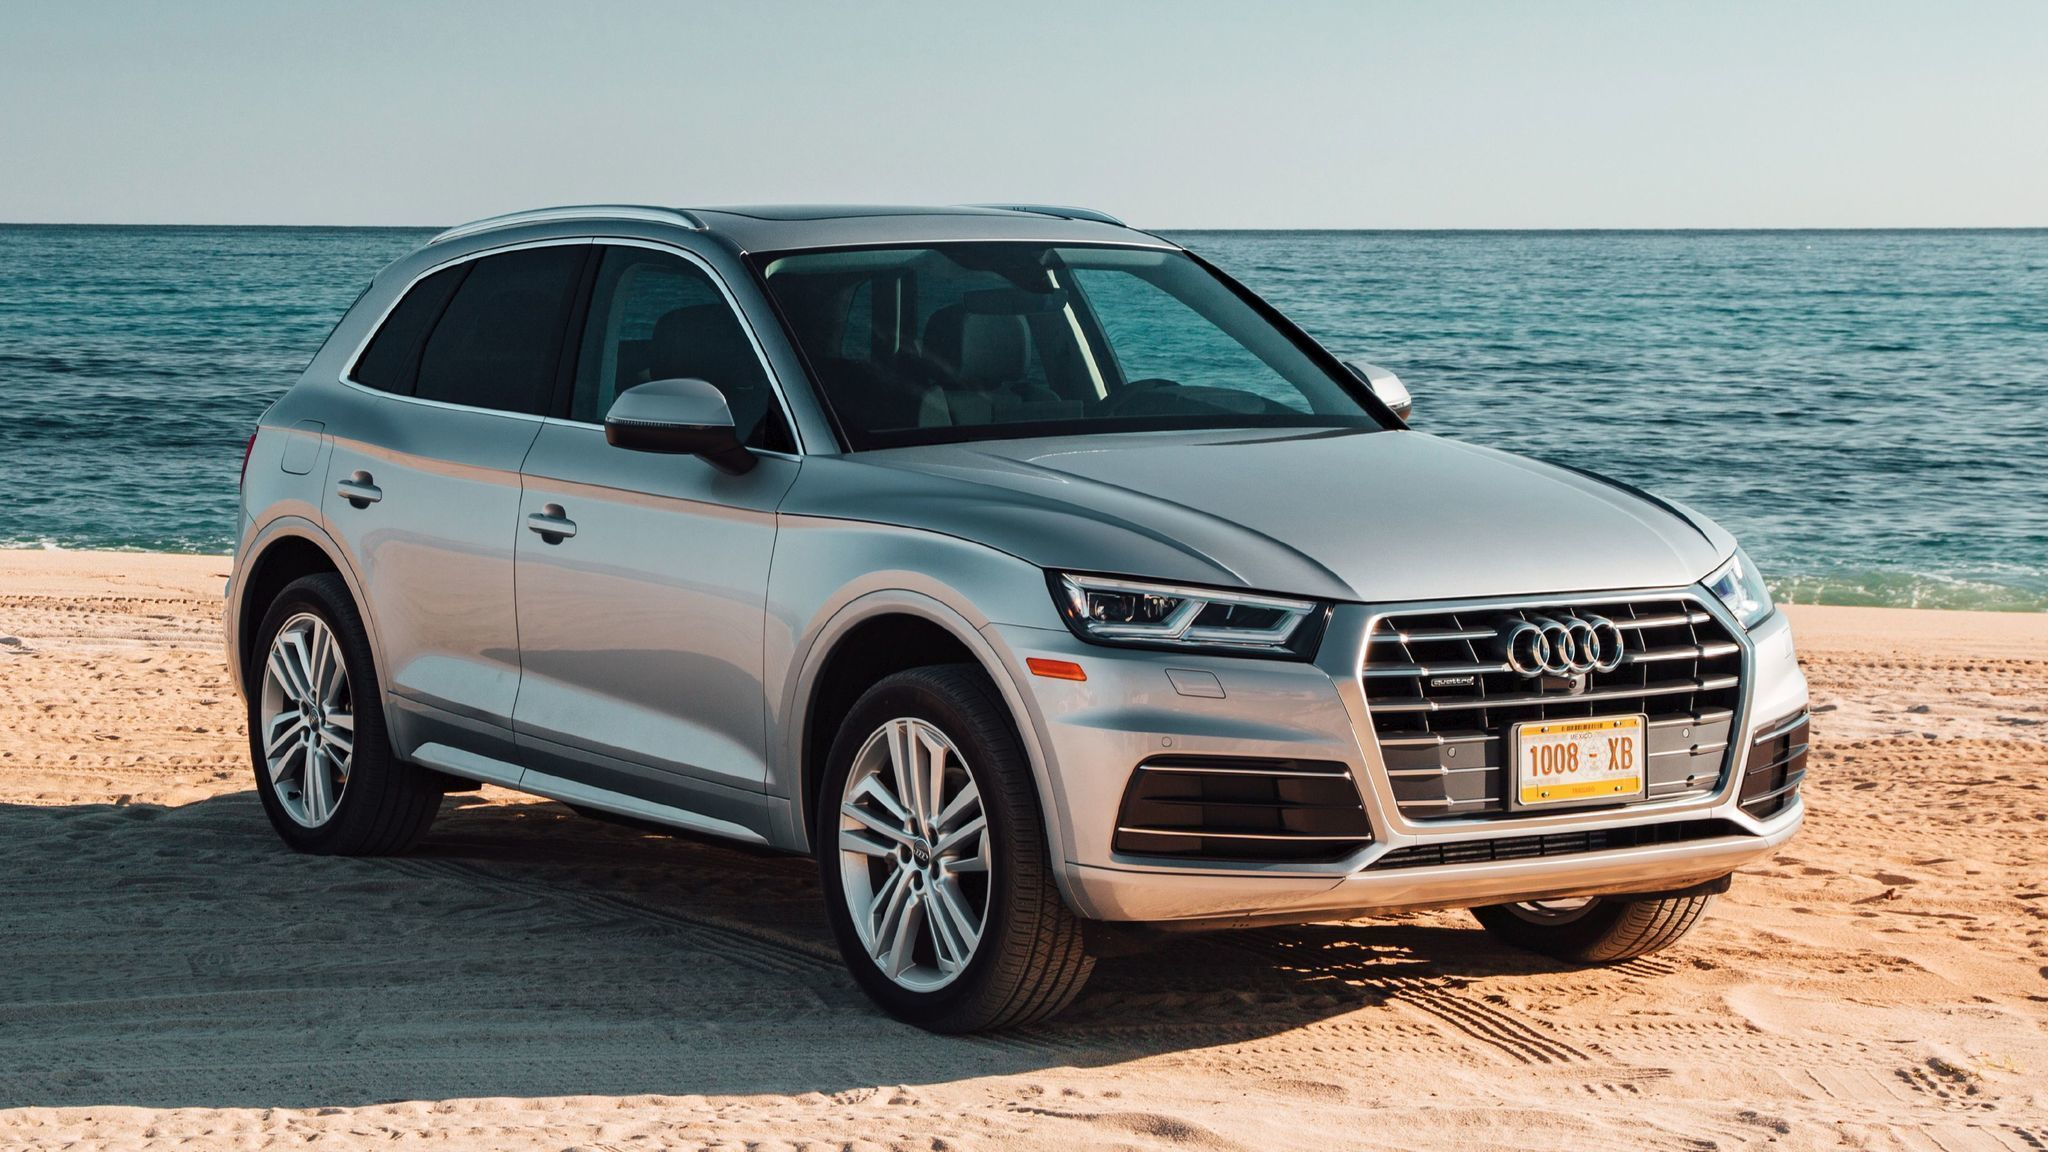 2018 audi q5 2 0t quattro s tronic the san diego union tribune. Black Bedroom Furniture Sets. Home Design Ideas